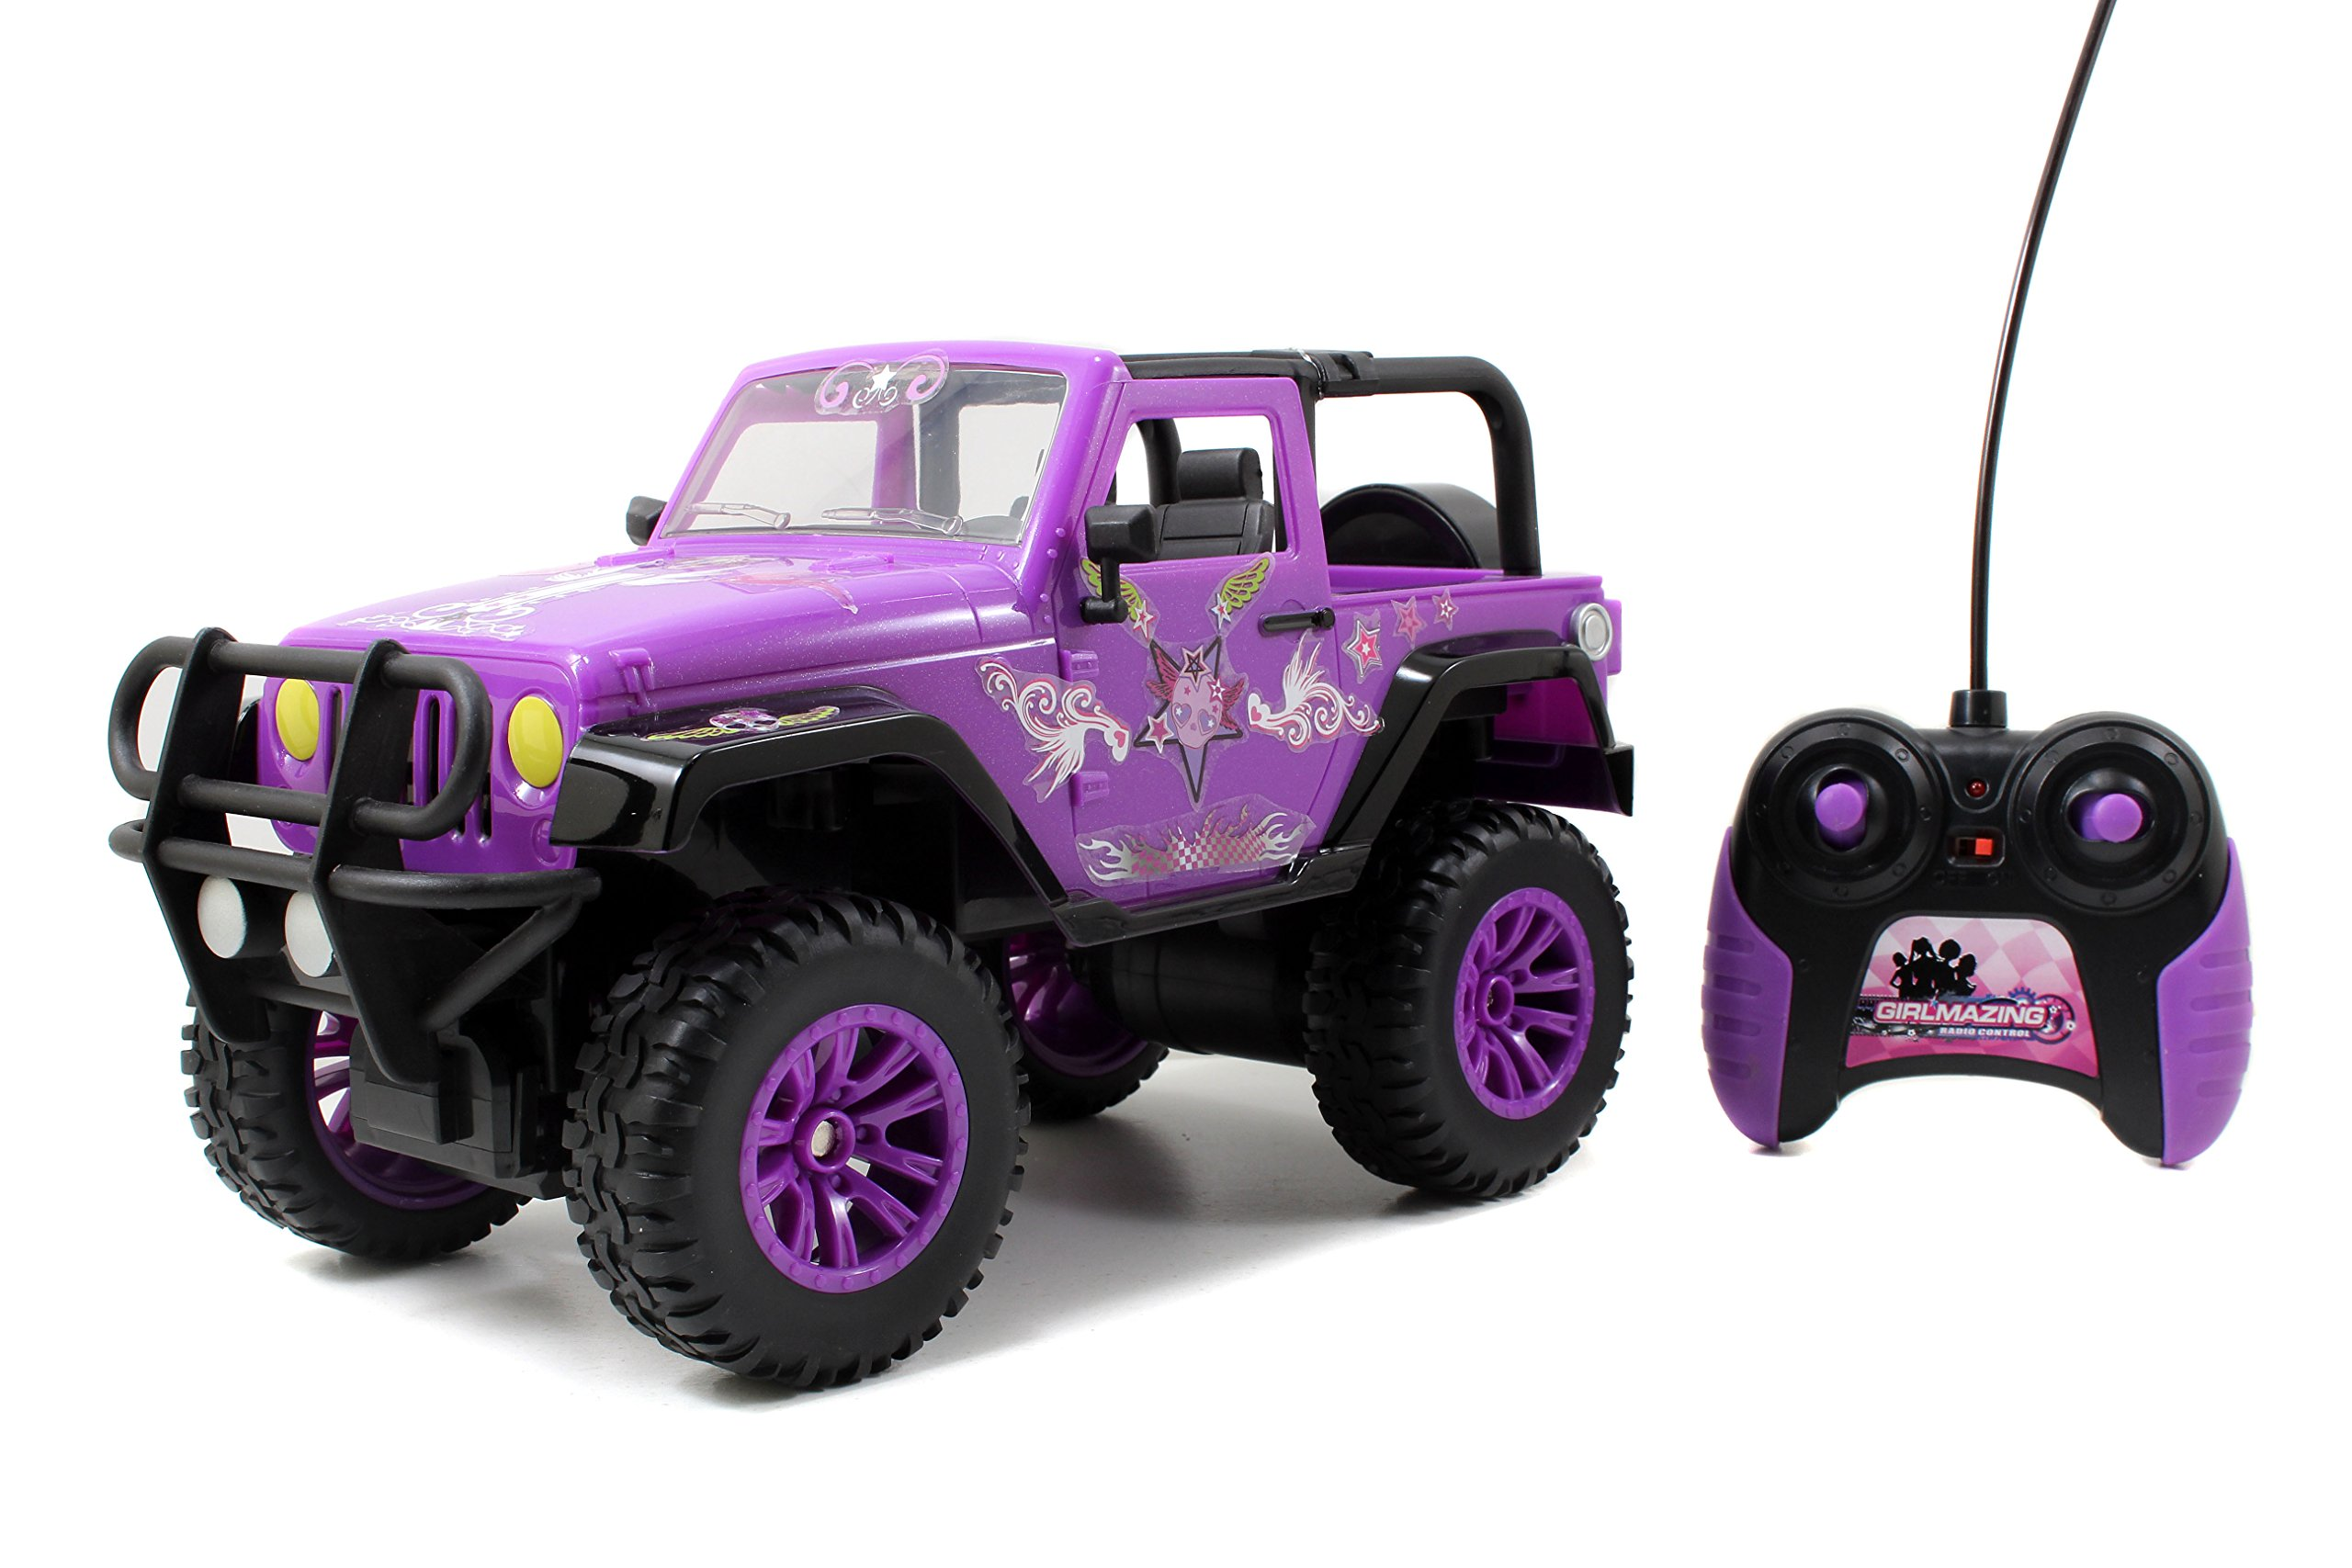 Jada Toys GIRLMAZING Big Foot Jeep R/C Vehicle (1:16 Scale), Purple by Jada Toys (Image #5)